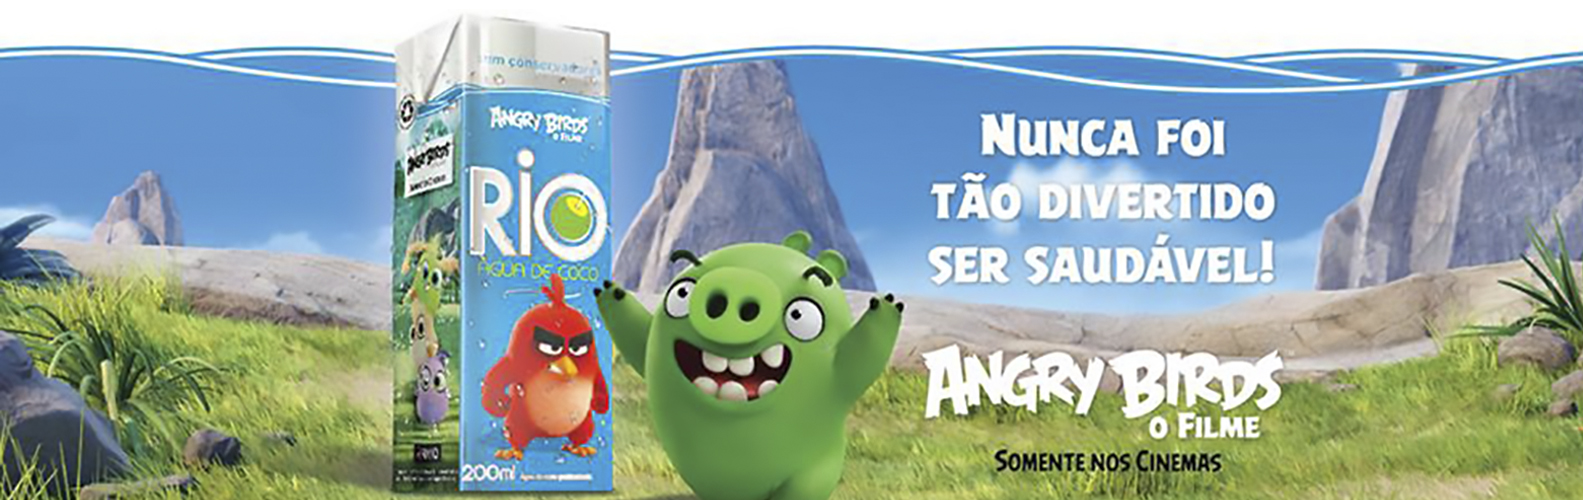 angry_birds_banner